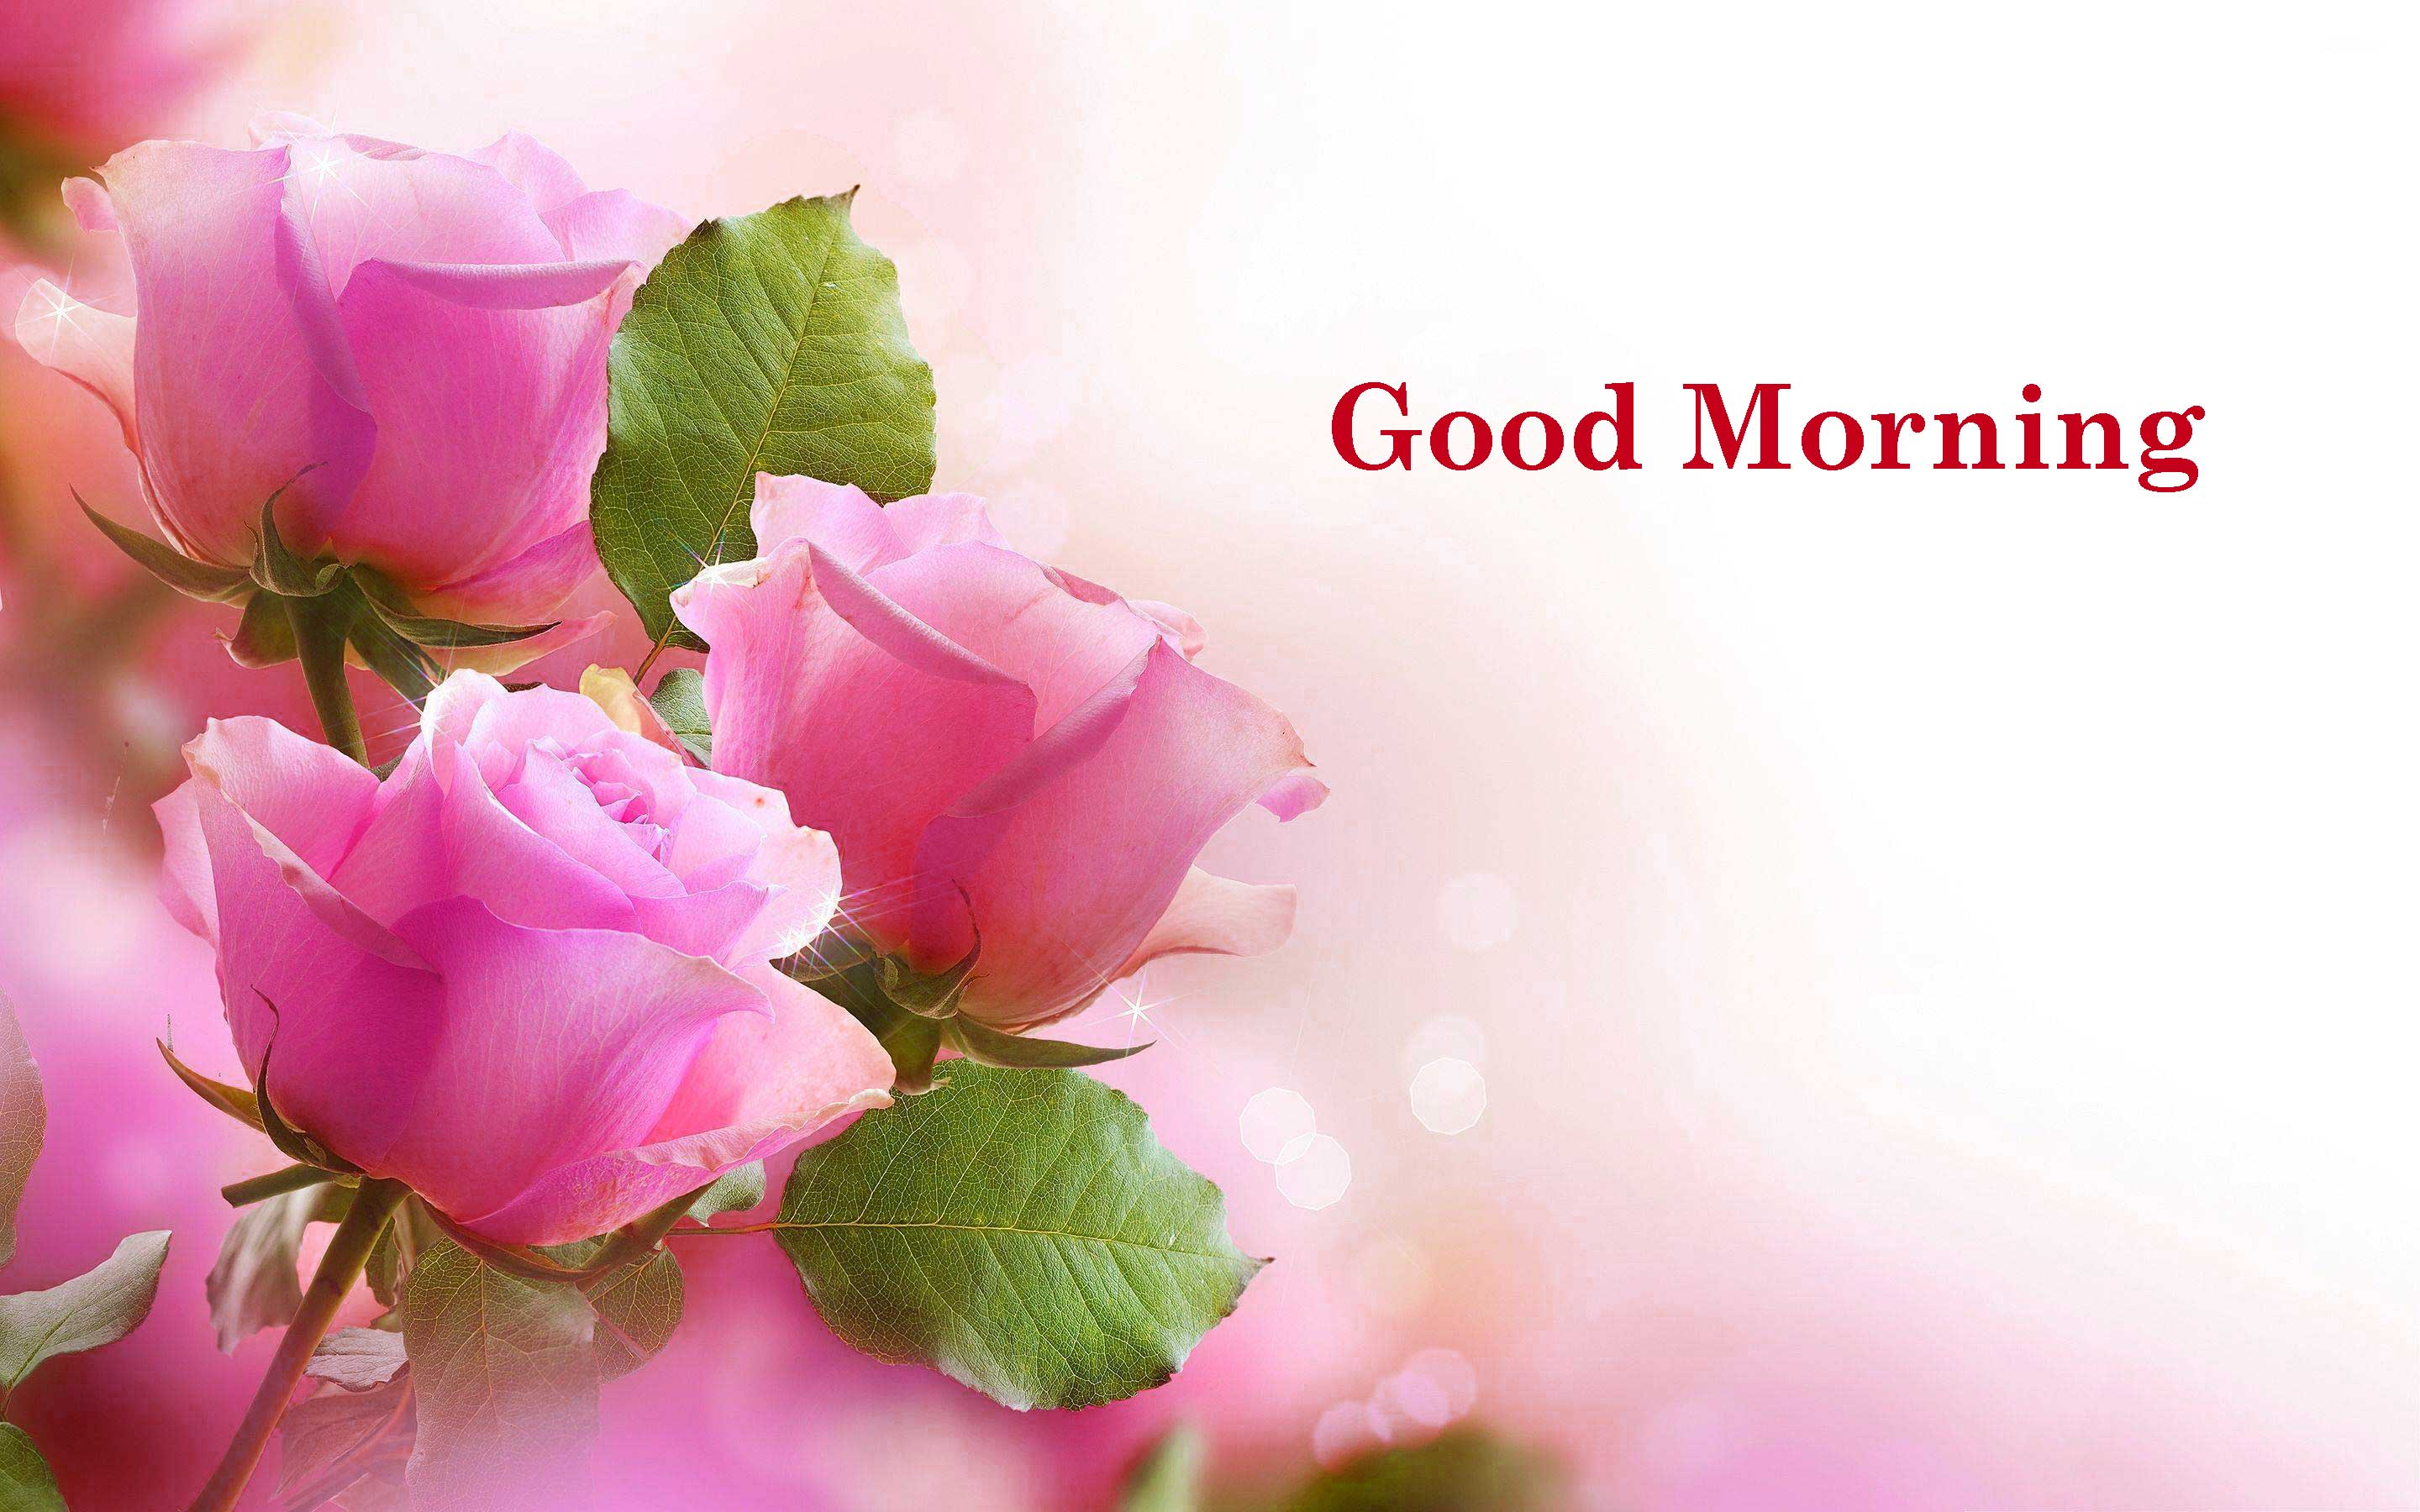 flower good morning Images Wallpaper Pictures Photo Pics HD Download For Whatsaap